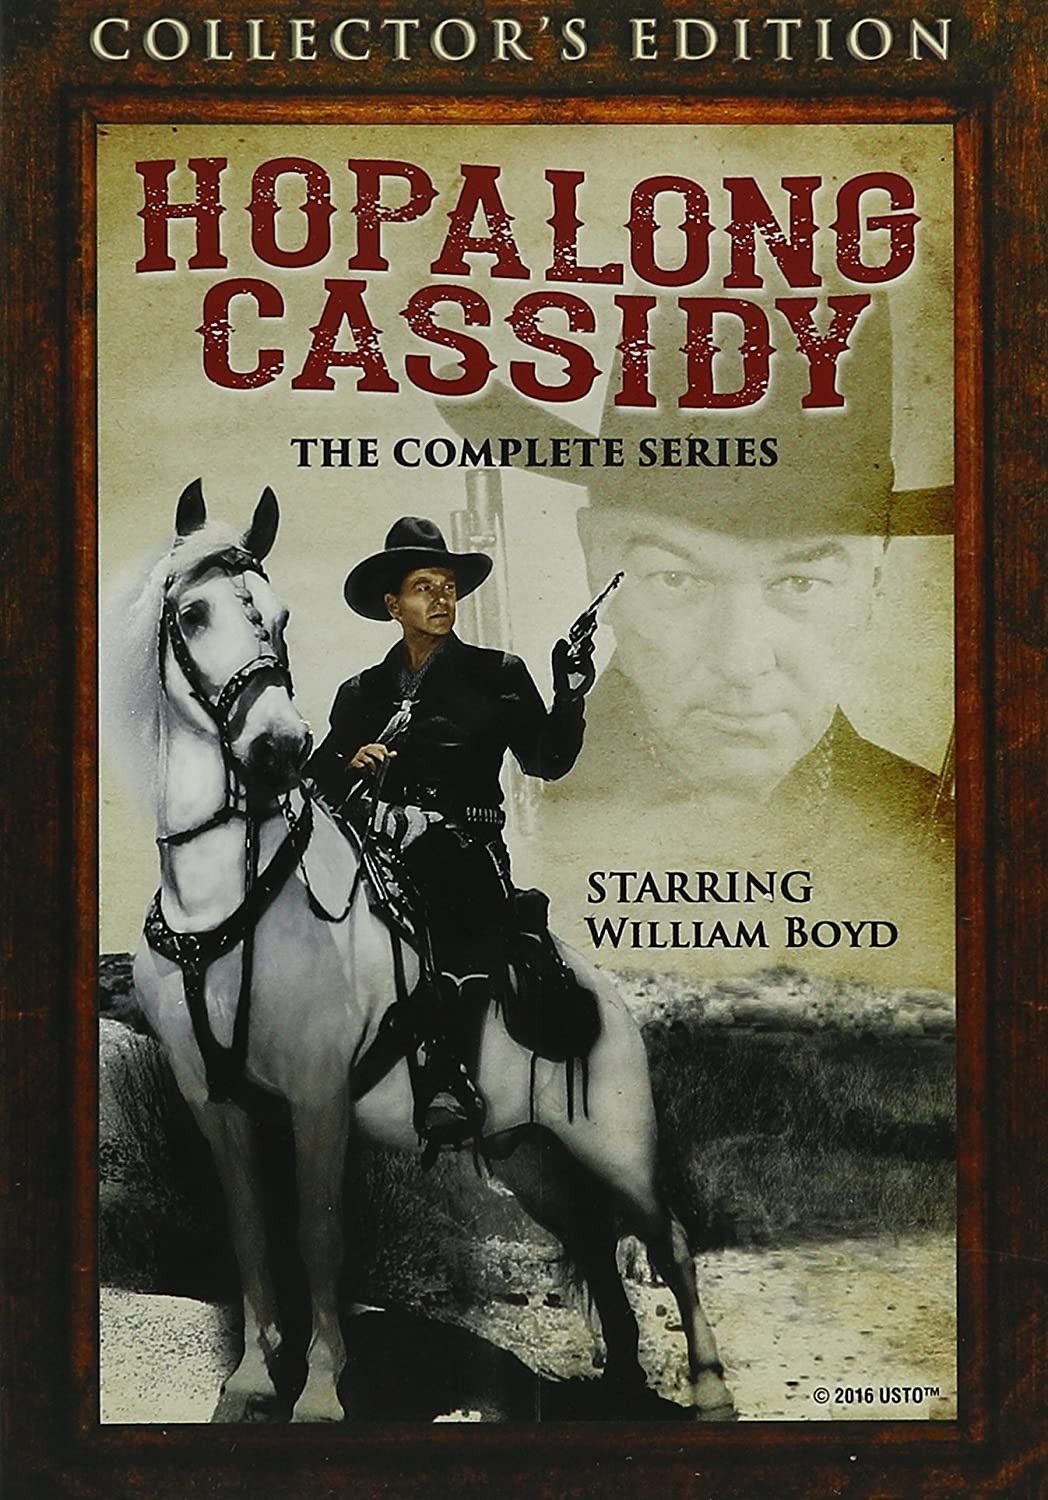 Hopalong Cassidy: The Complete Television Series William Boyd Topper the Horse Edgar Buchanan George Archainbaud